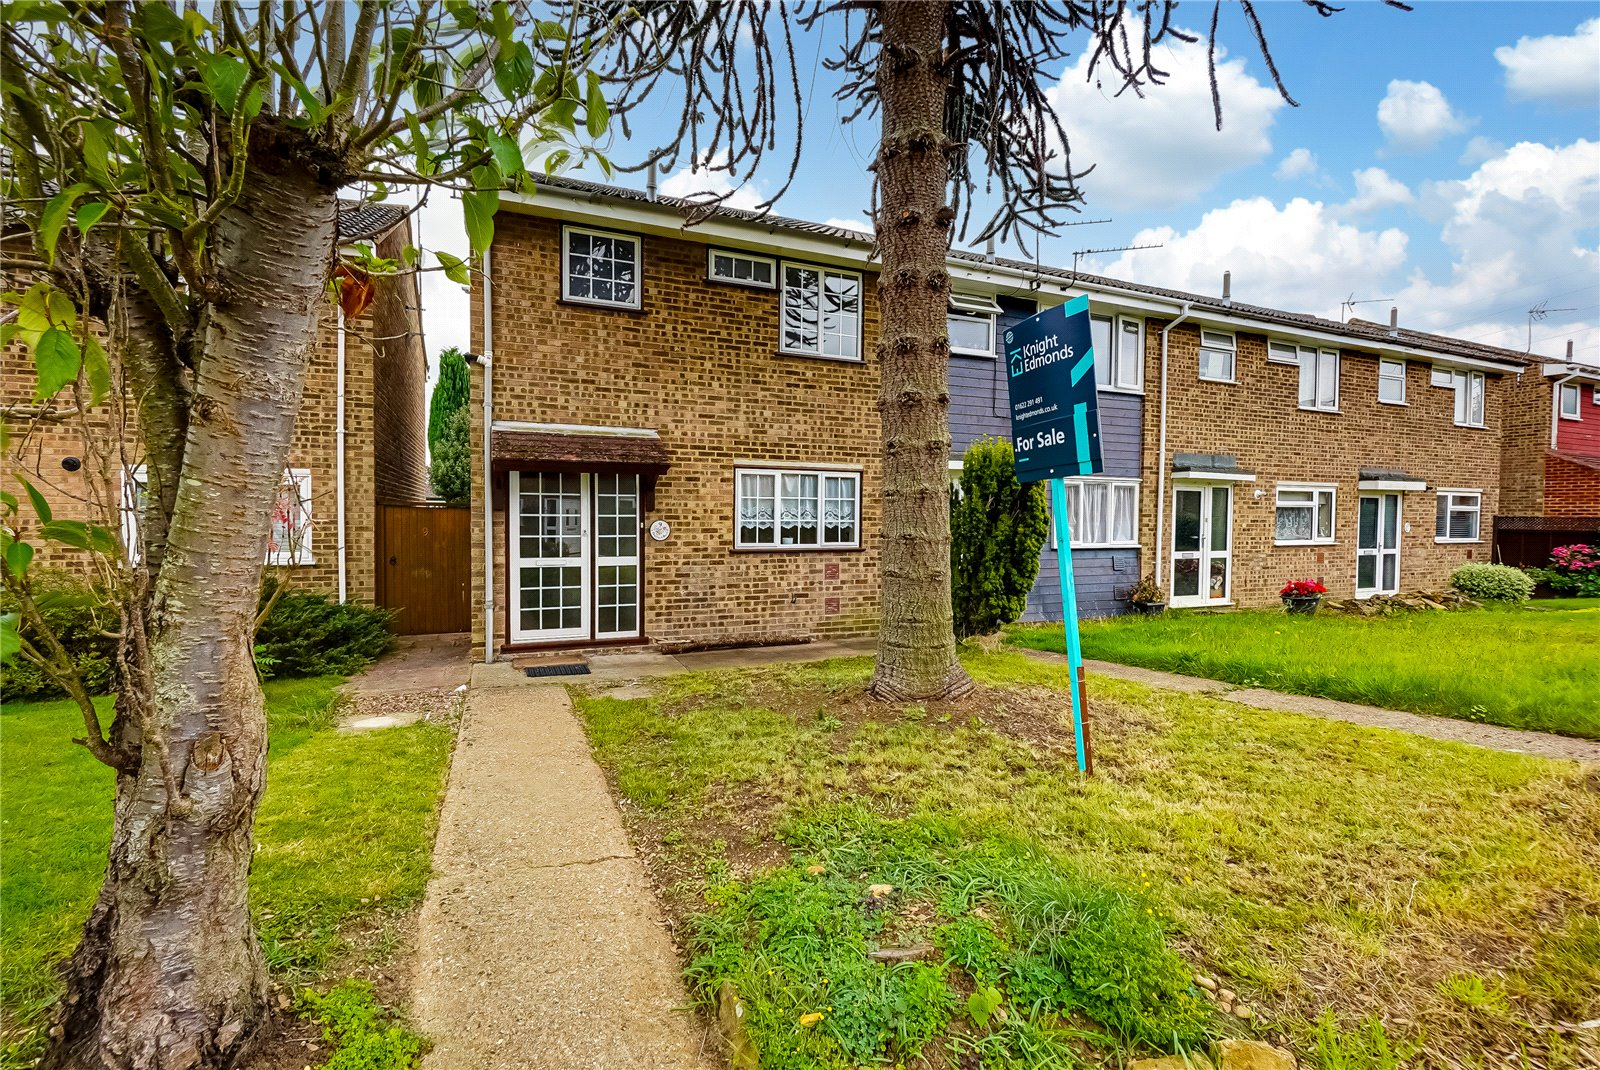 3 bed house for sale in Challock Walk, Vinters Park, ME14